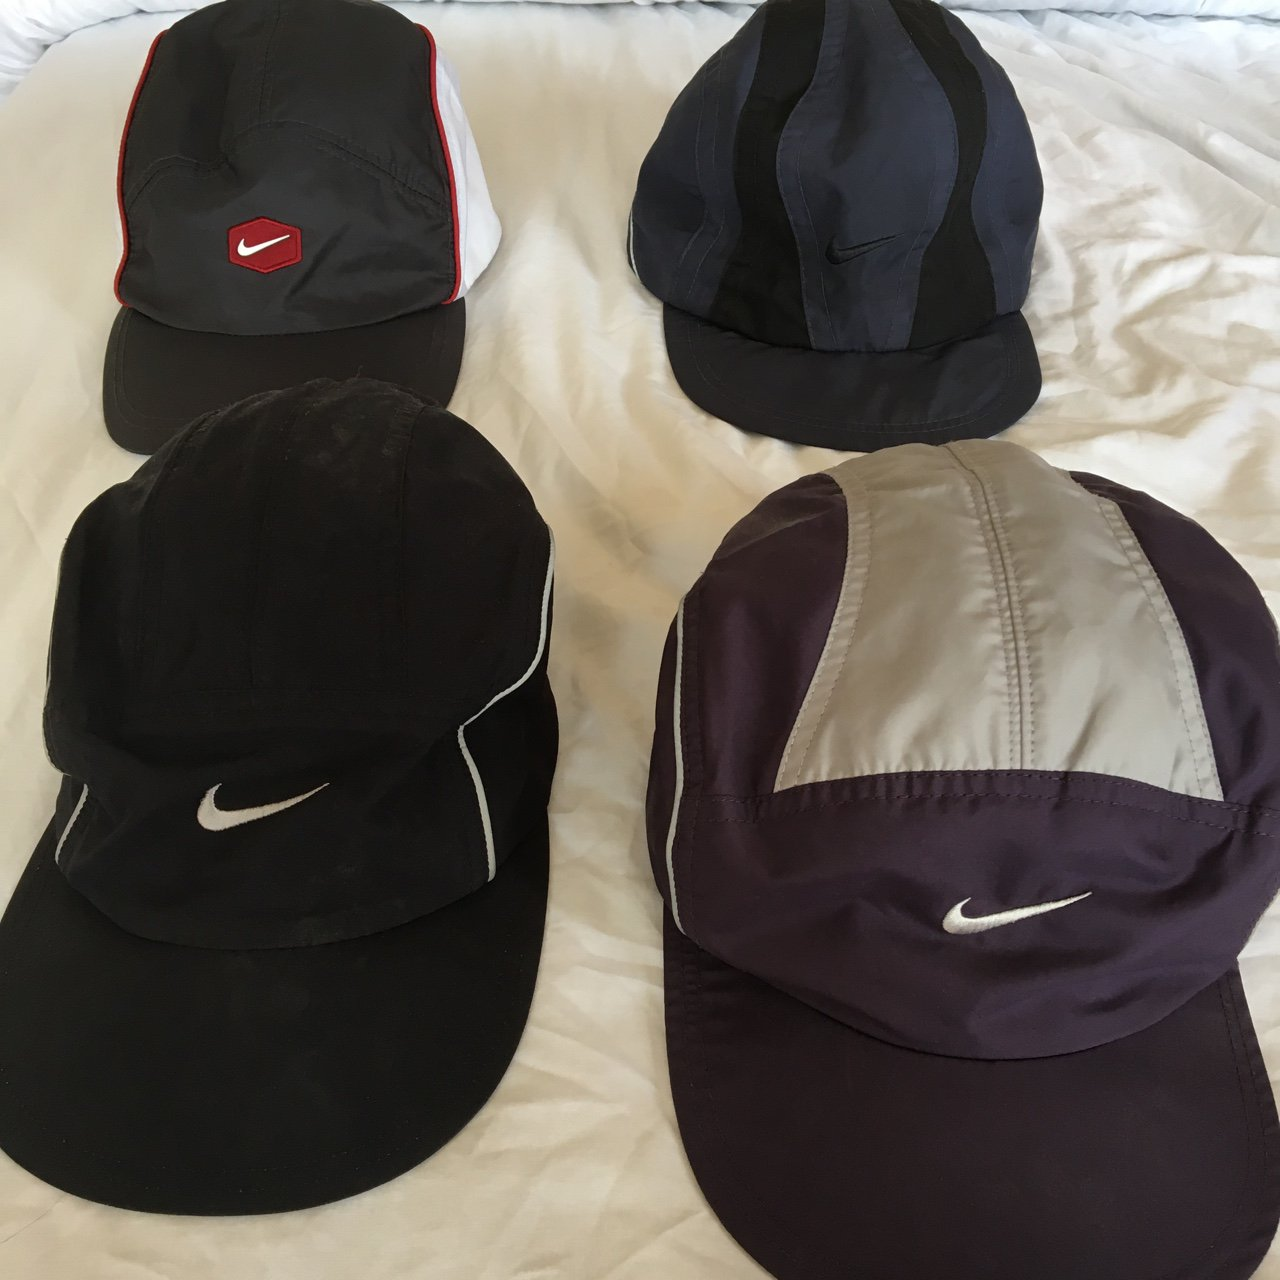 Nike clima fit hats. Very rare hats hard to find. Top left - Depop fba32e5d6db